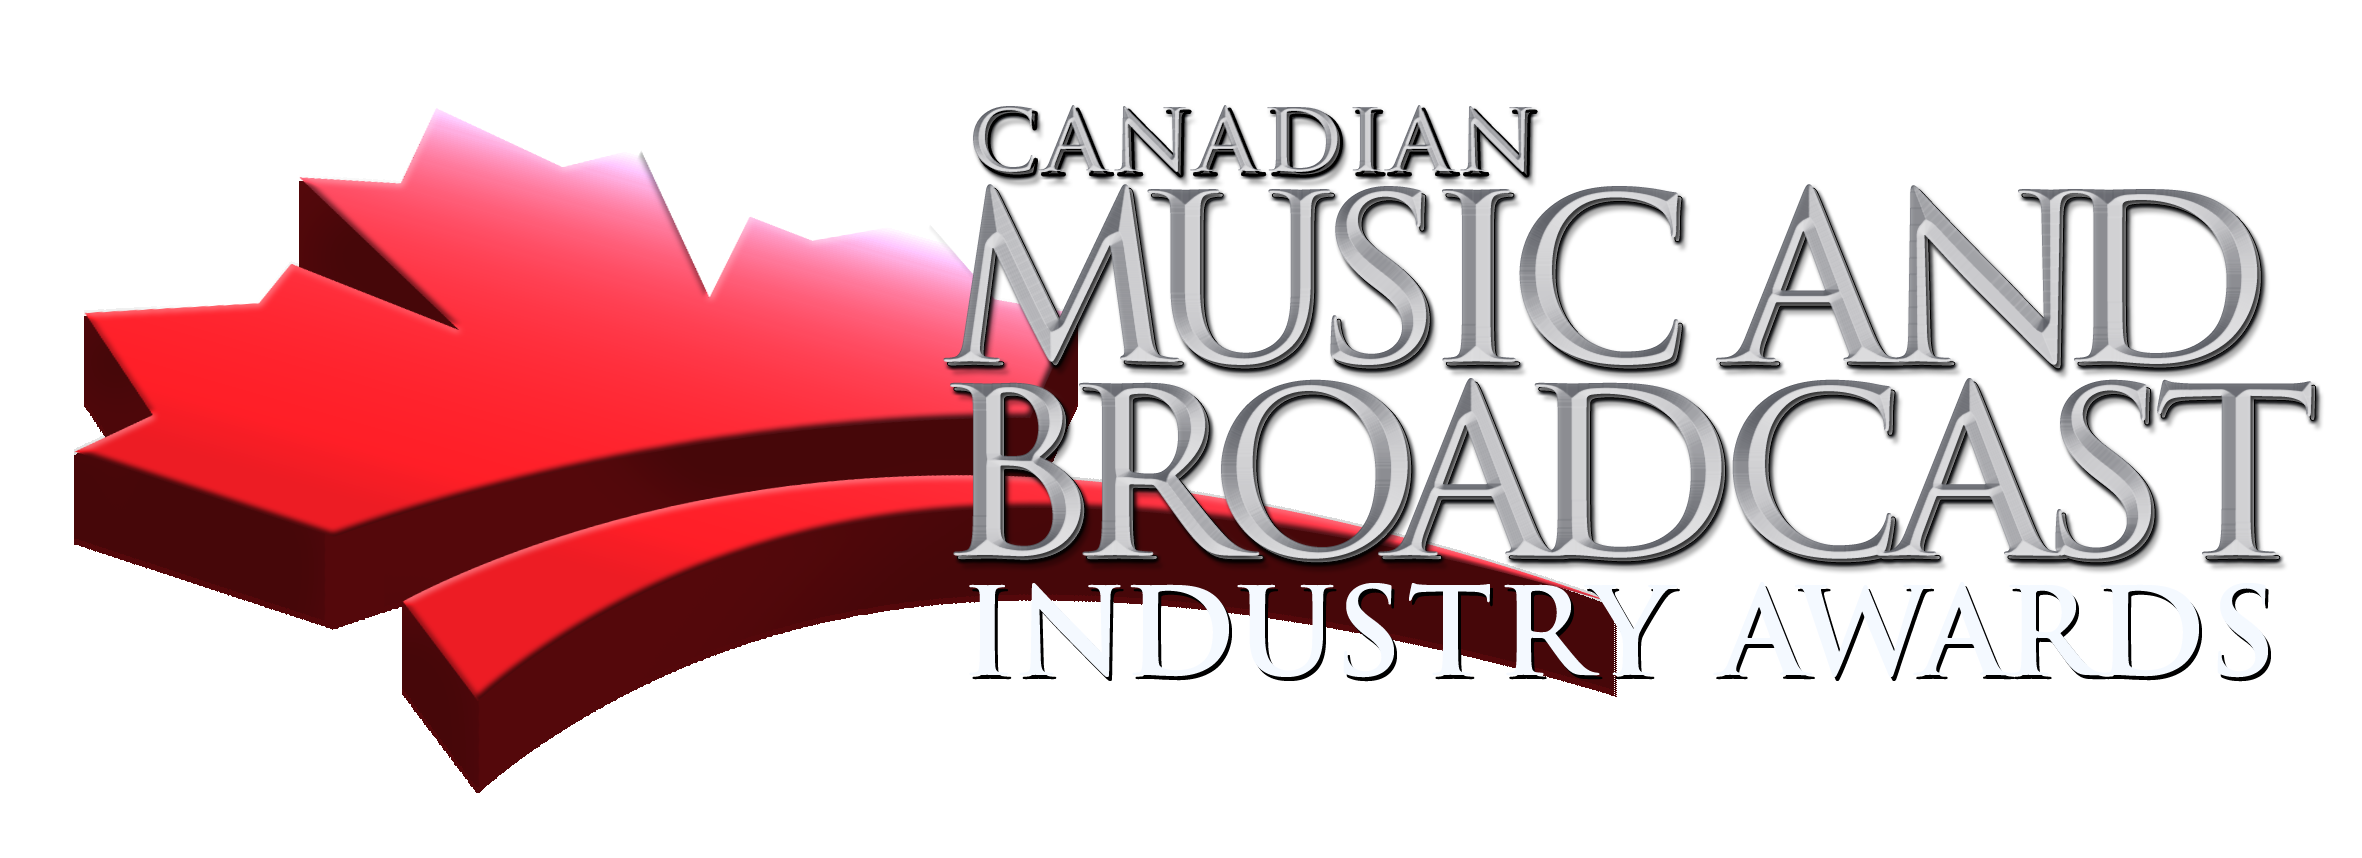 Canadian Music and Broadcast Industry Awards Announced